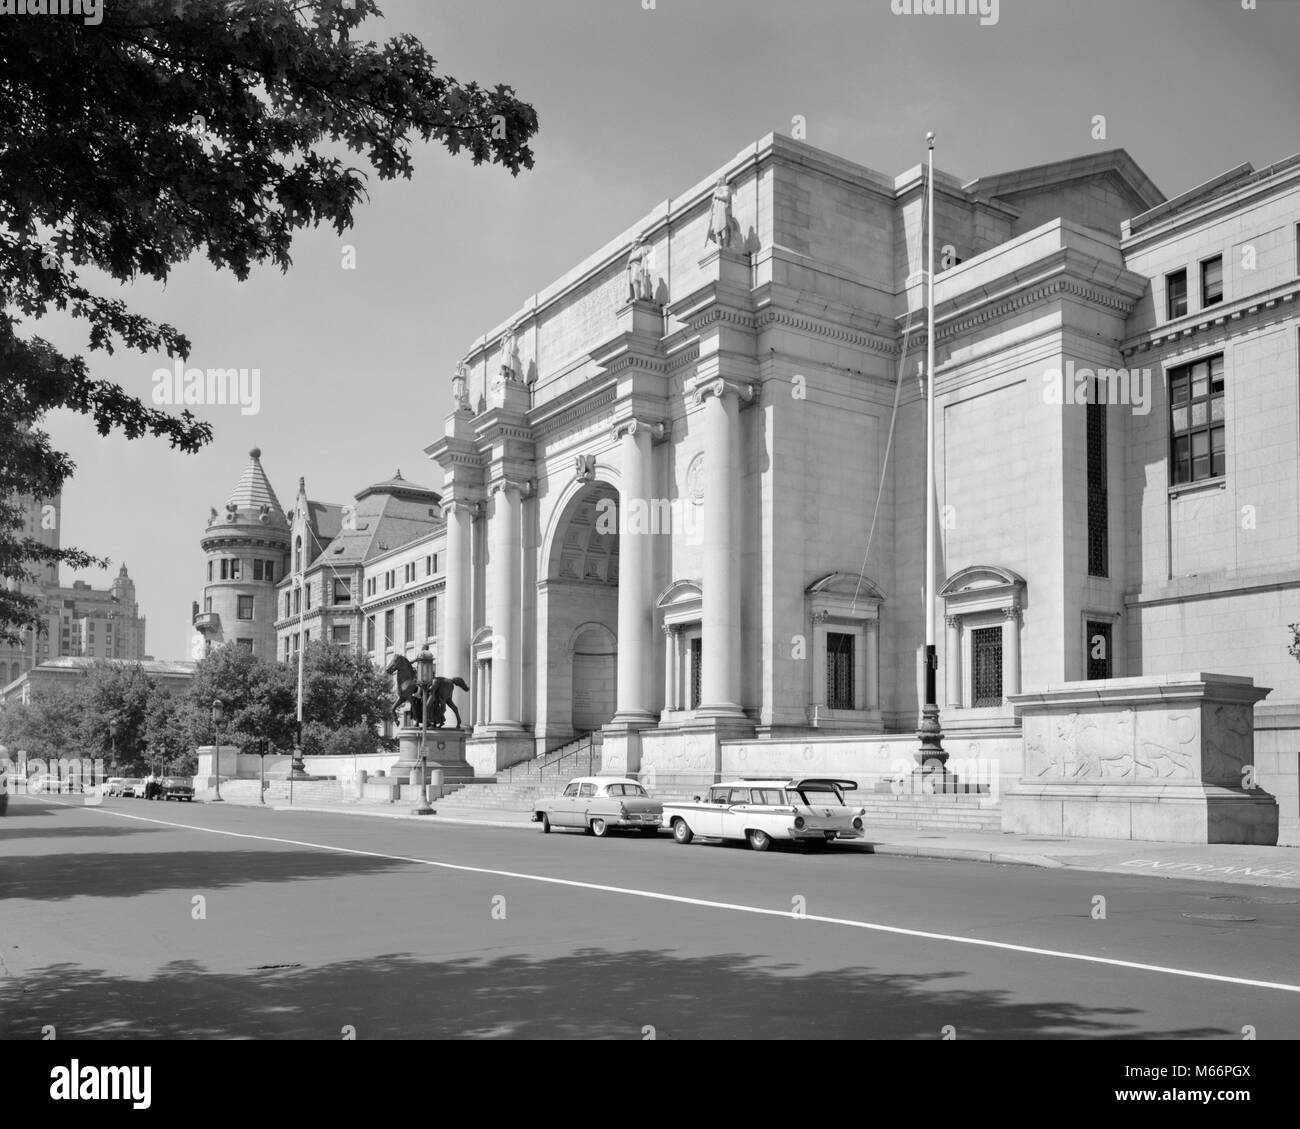 1950 1960 Museo Americano de Historia Natural en Central Park West de Manhattan, NUEVA YORK, ESTADOS UNIDOS - r5719 Imagen De Stock